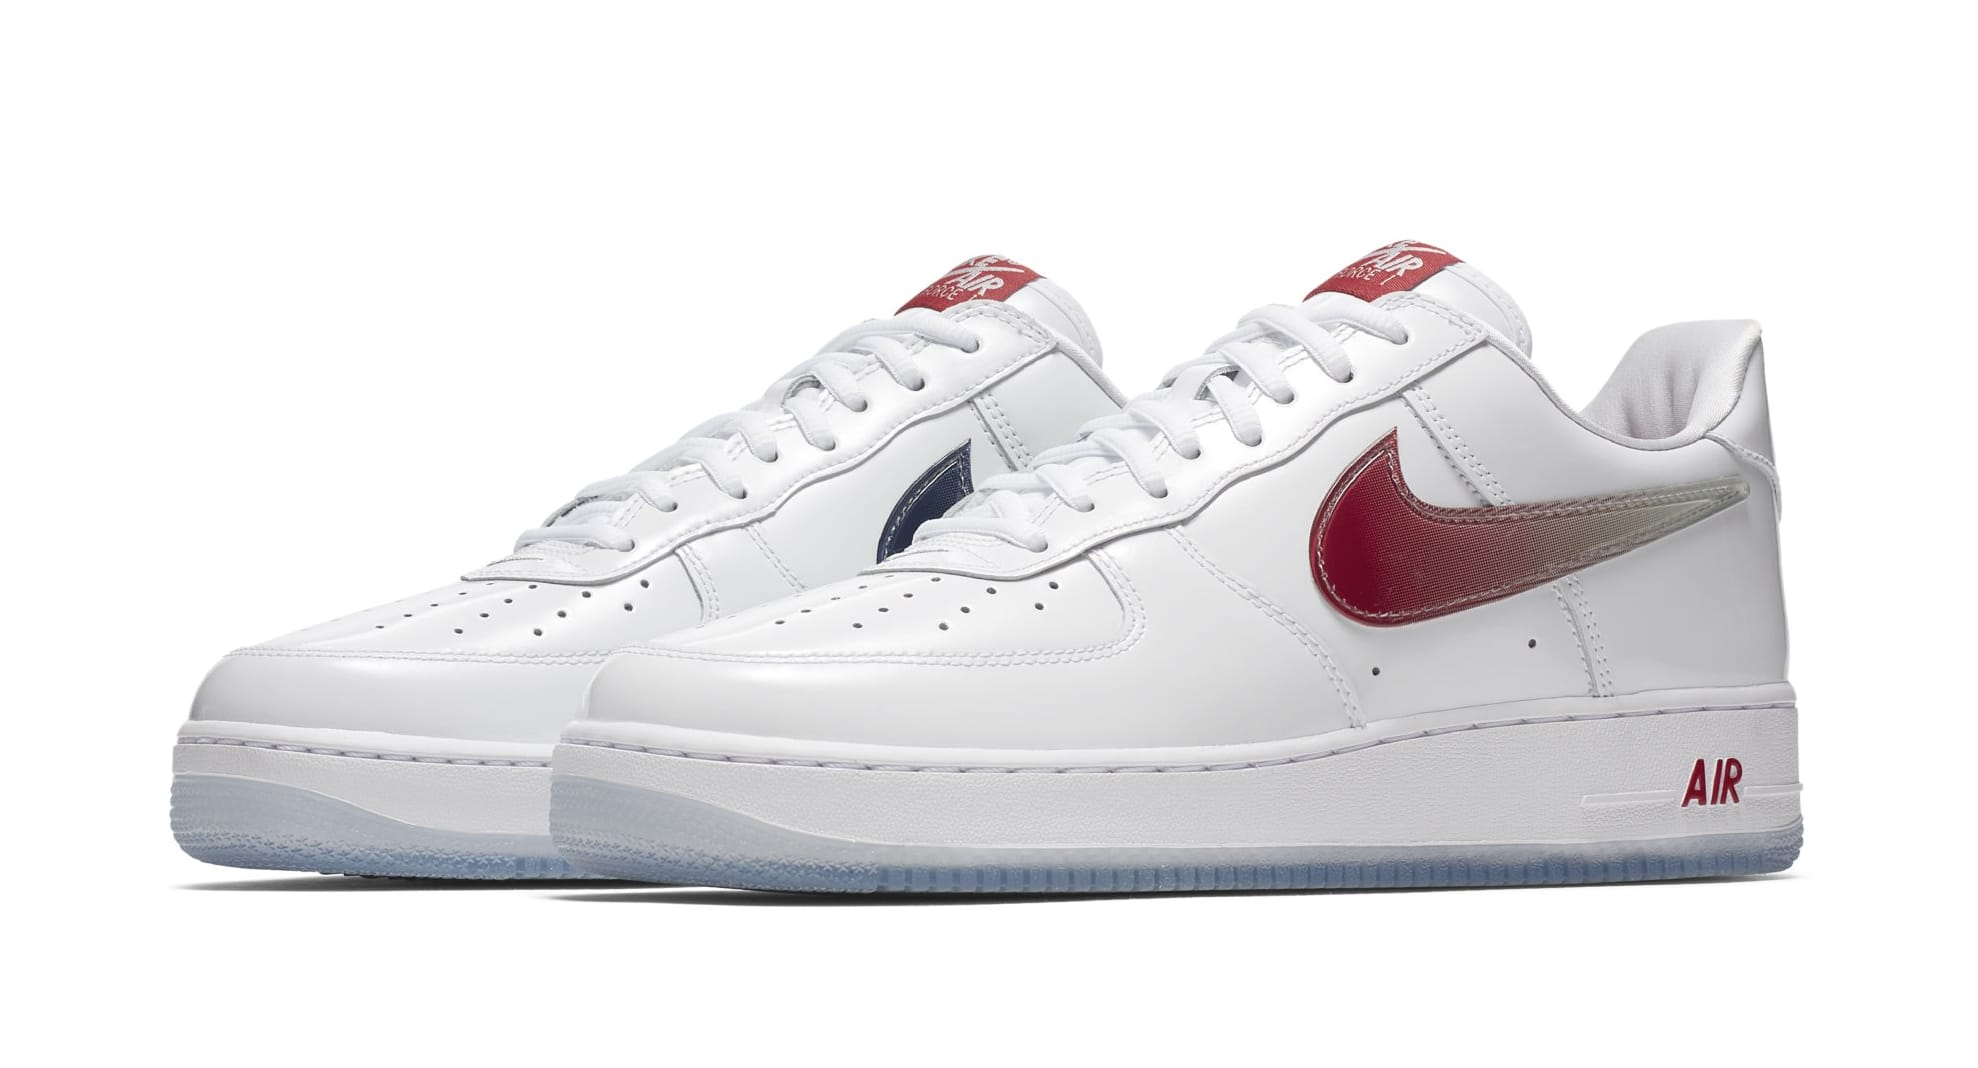 Nike Air Force 1 Low Retro Taiwan White Red Navy Limited Edition OG 845053105